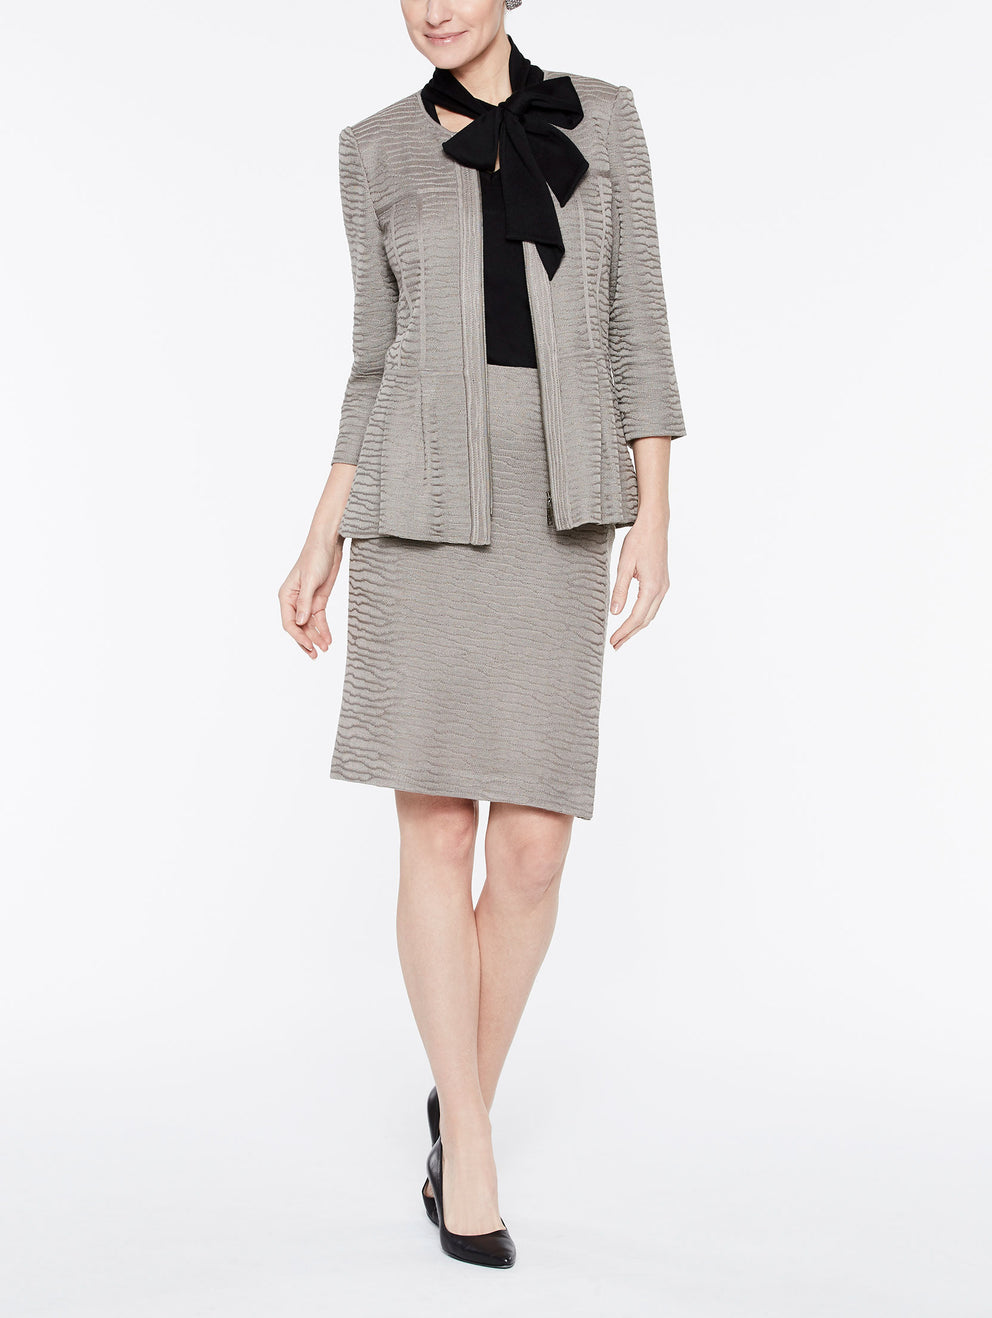 Textured Wavy Pattern Peplum Jacket Color Mink Grey